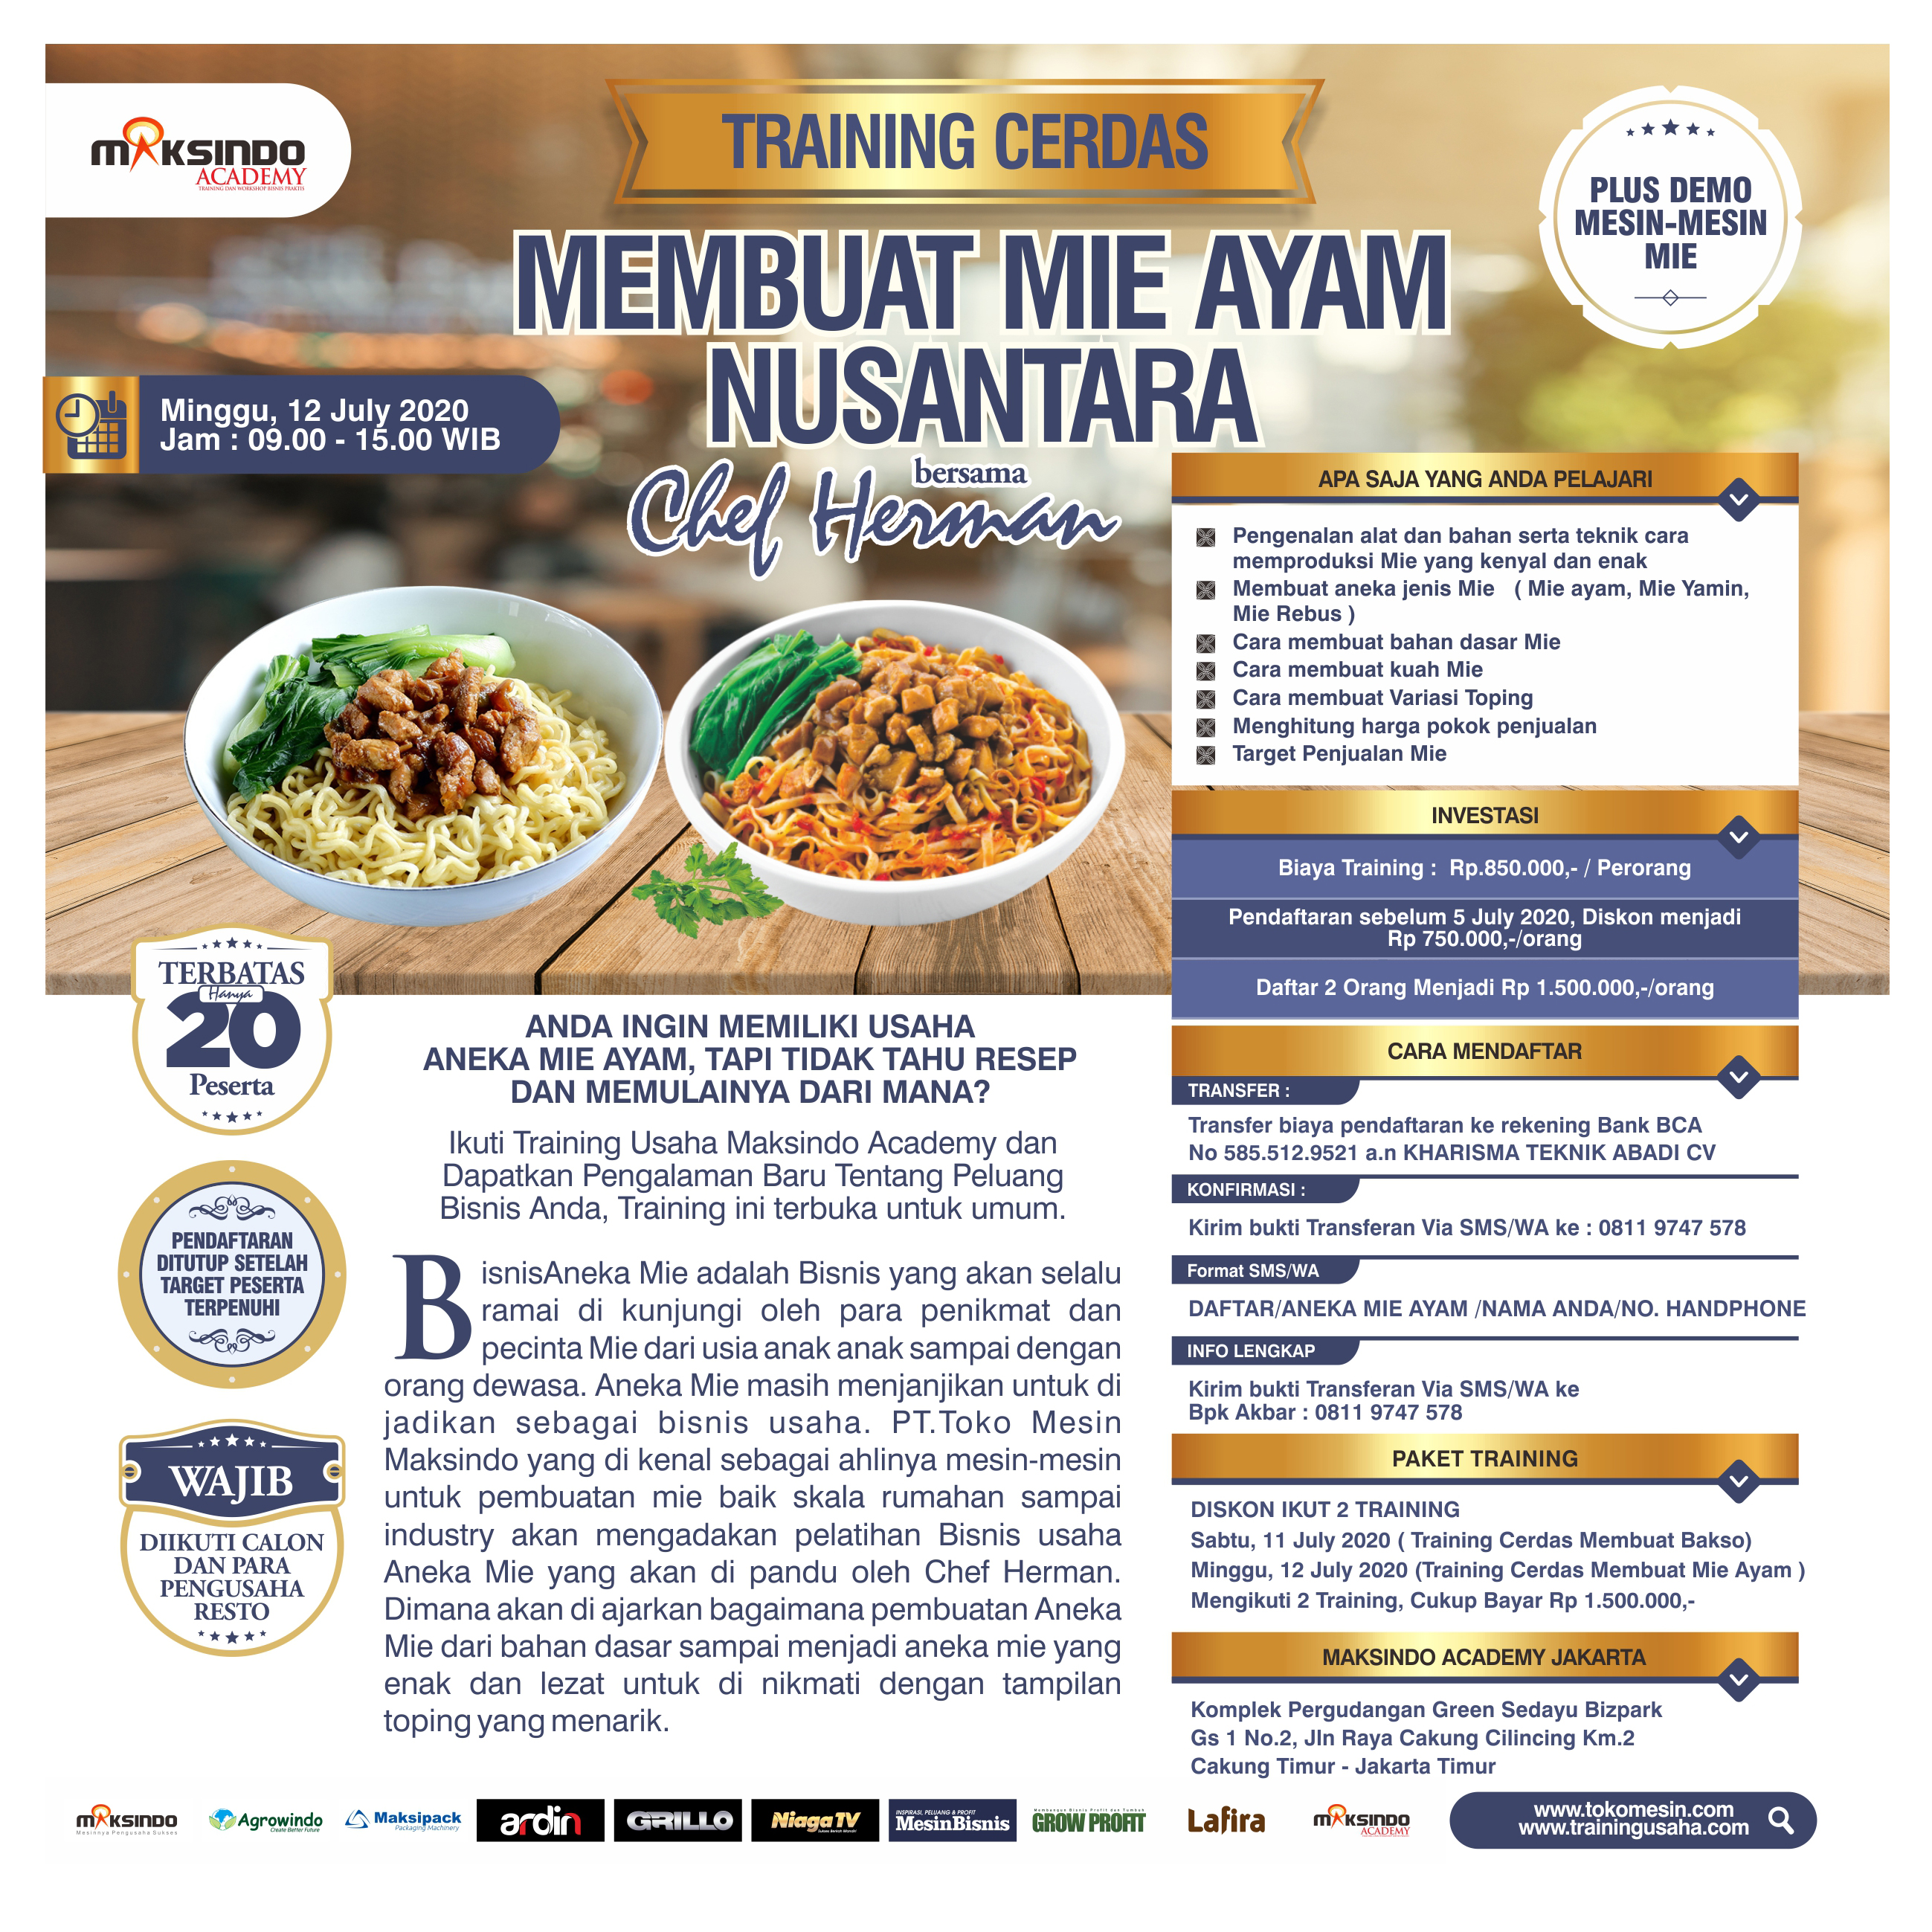 Training Cerdas Membuat Mie Ayam Nusantara, Minggu, 12 July 2020